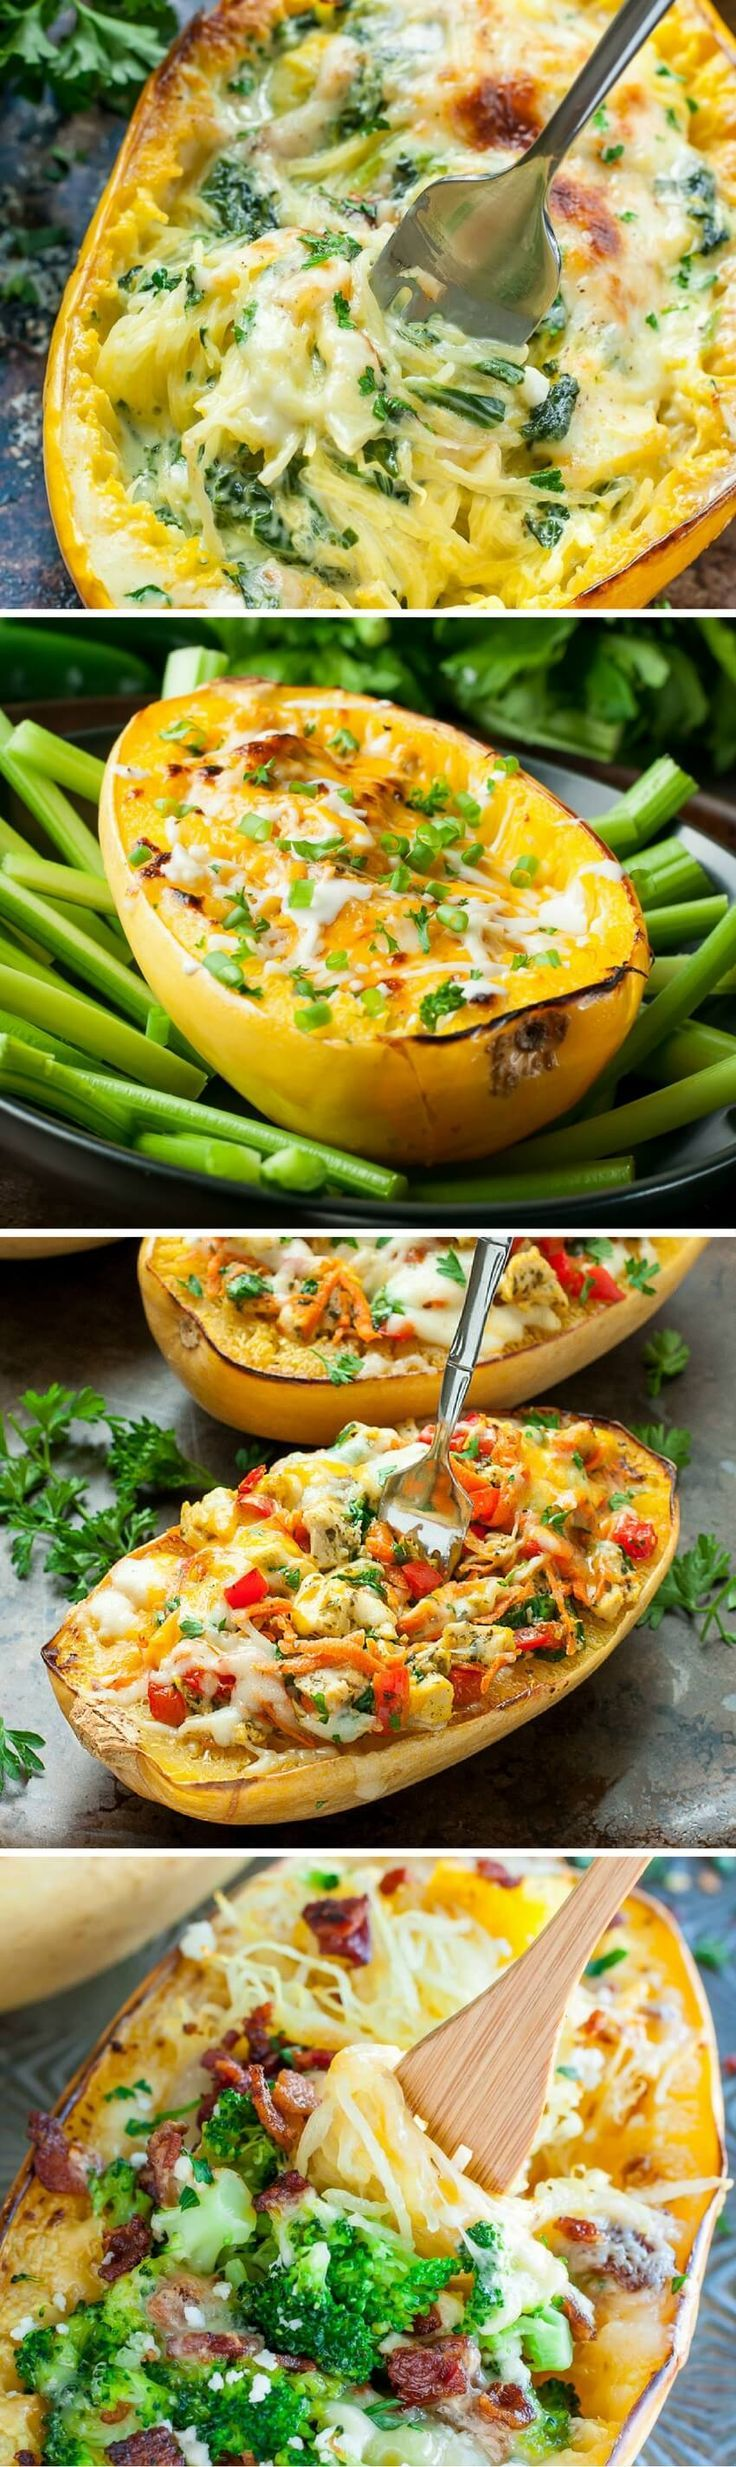 7 Ways to Stuff a Spaghetti Squash :: with vegan, vegetarian, and t-rex options available, there's something for everyone here!